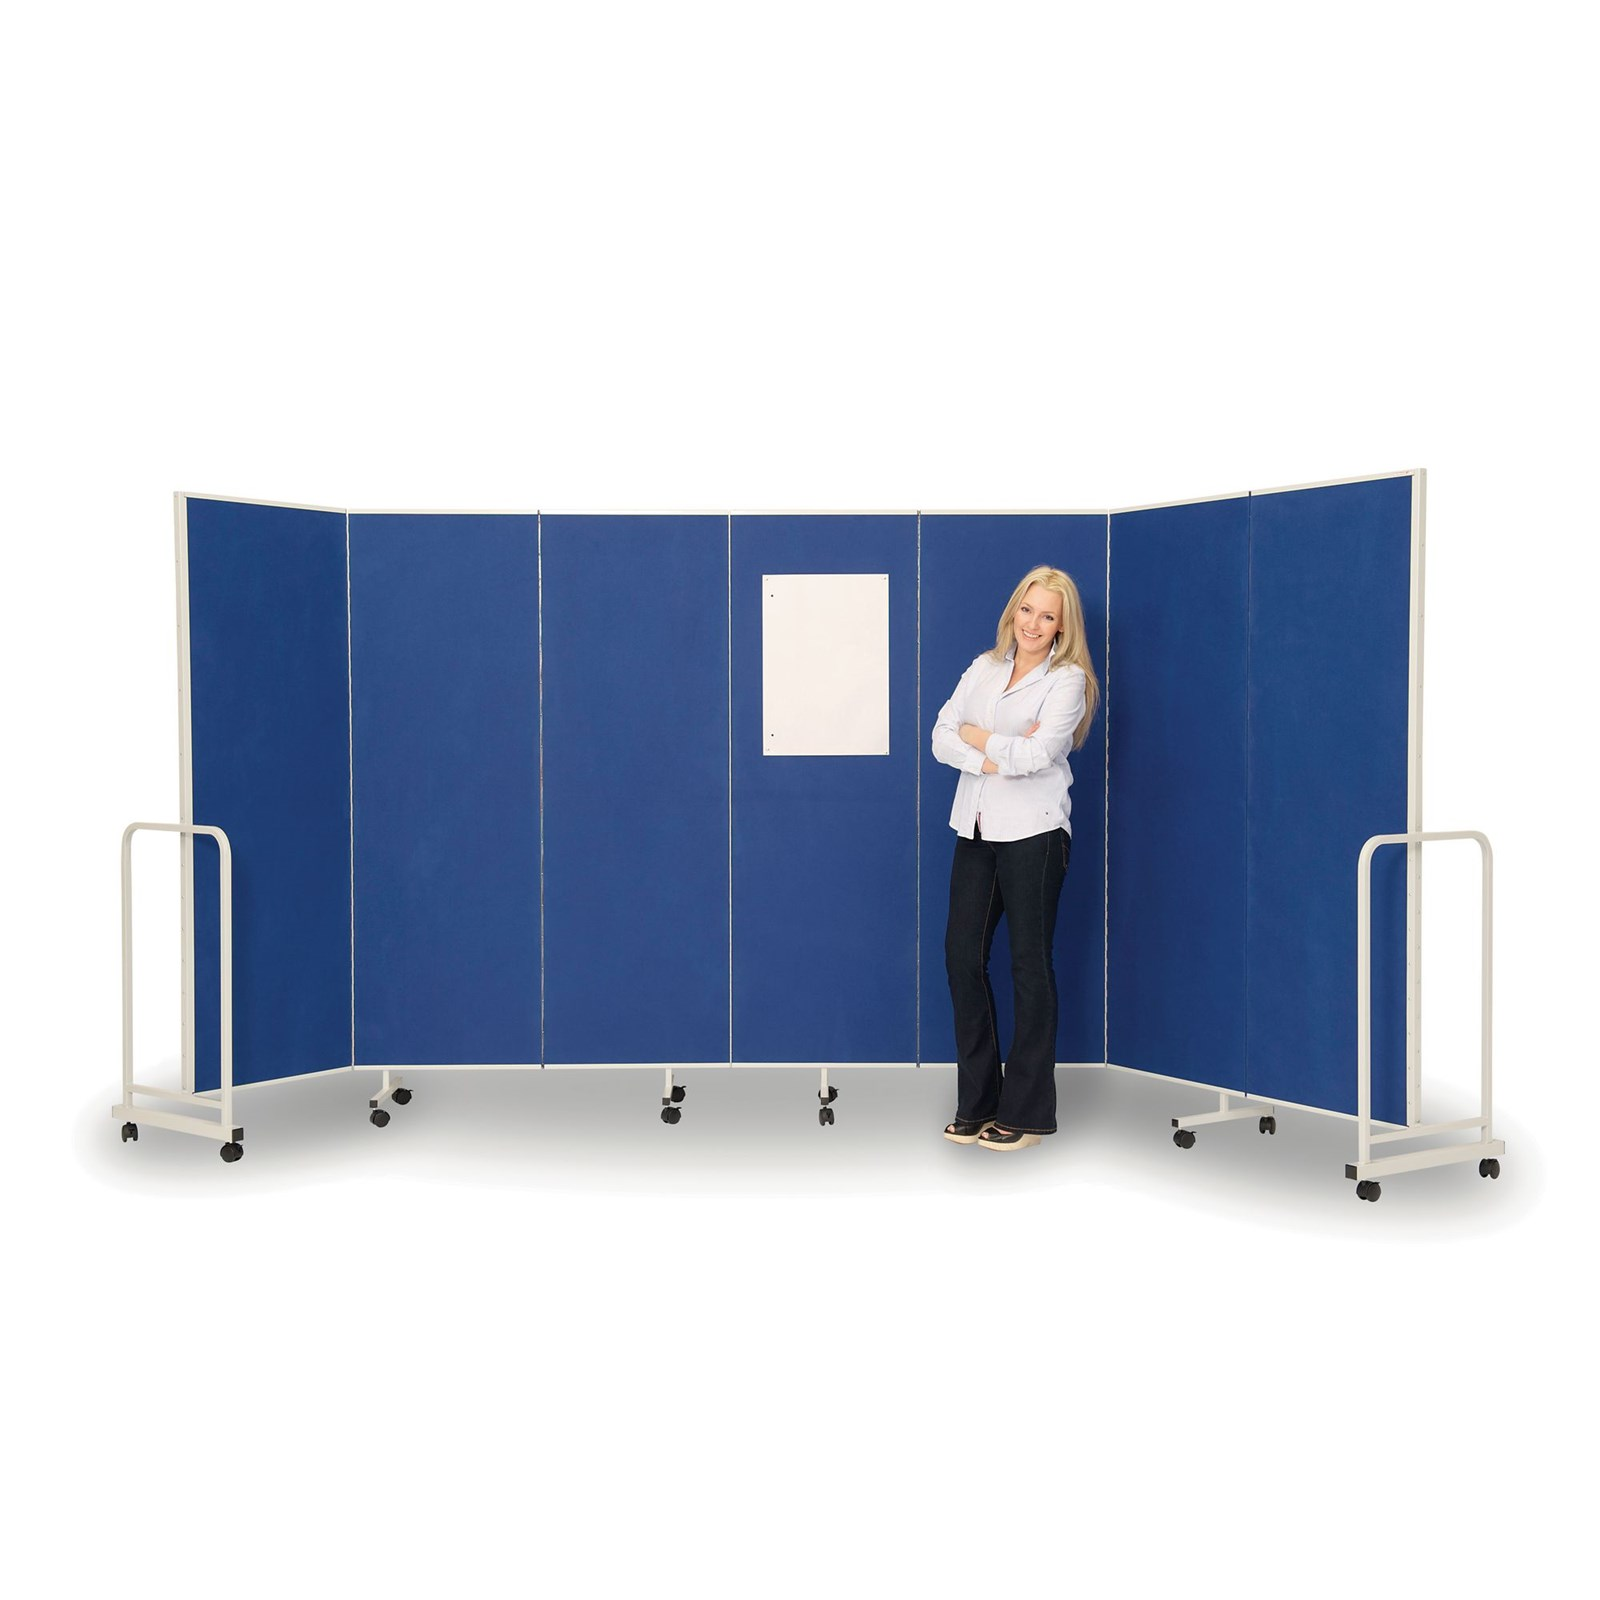 Sound Absorbing Mobile Partitioning - Blue